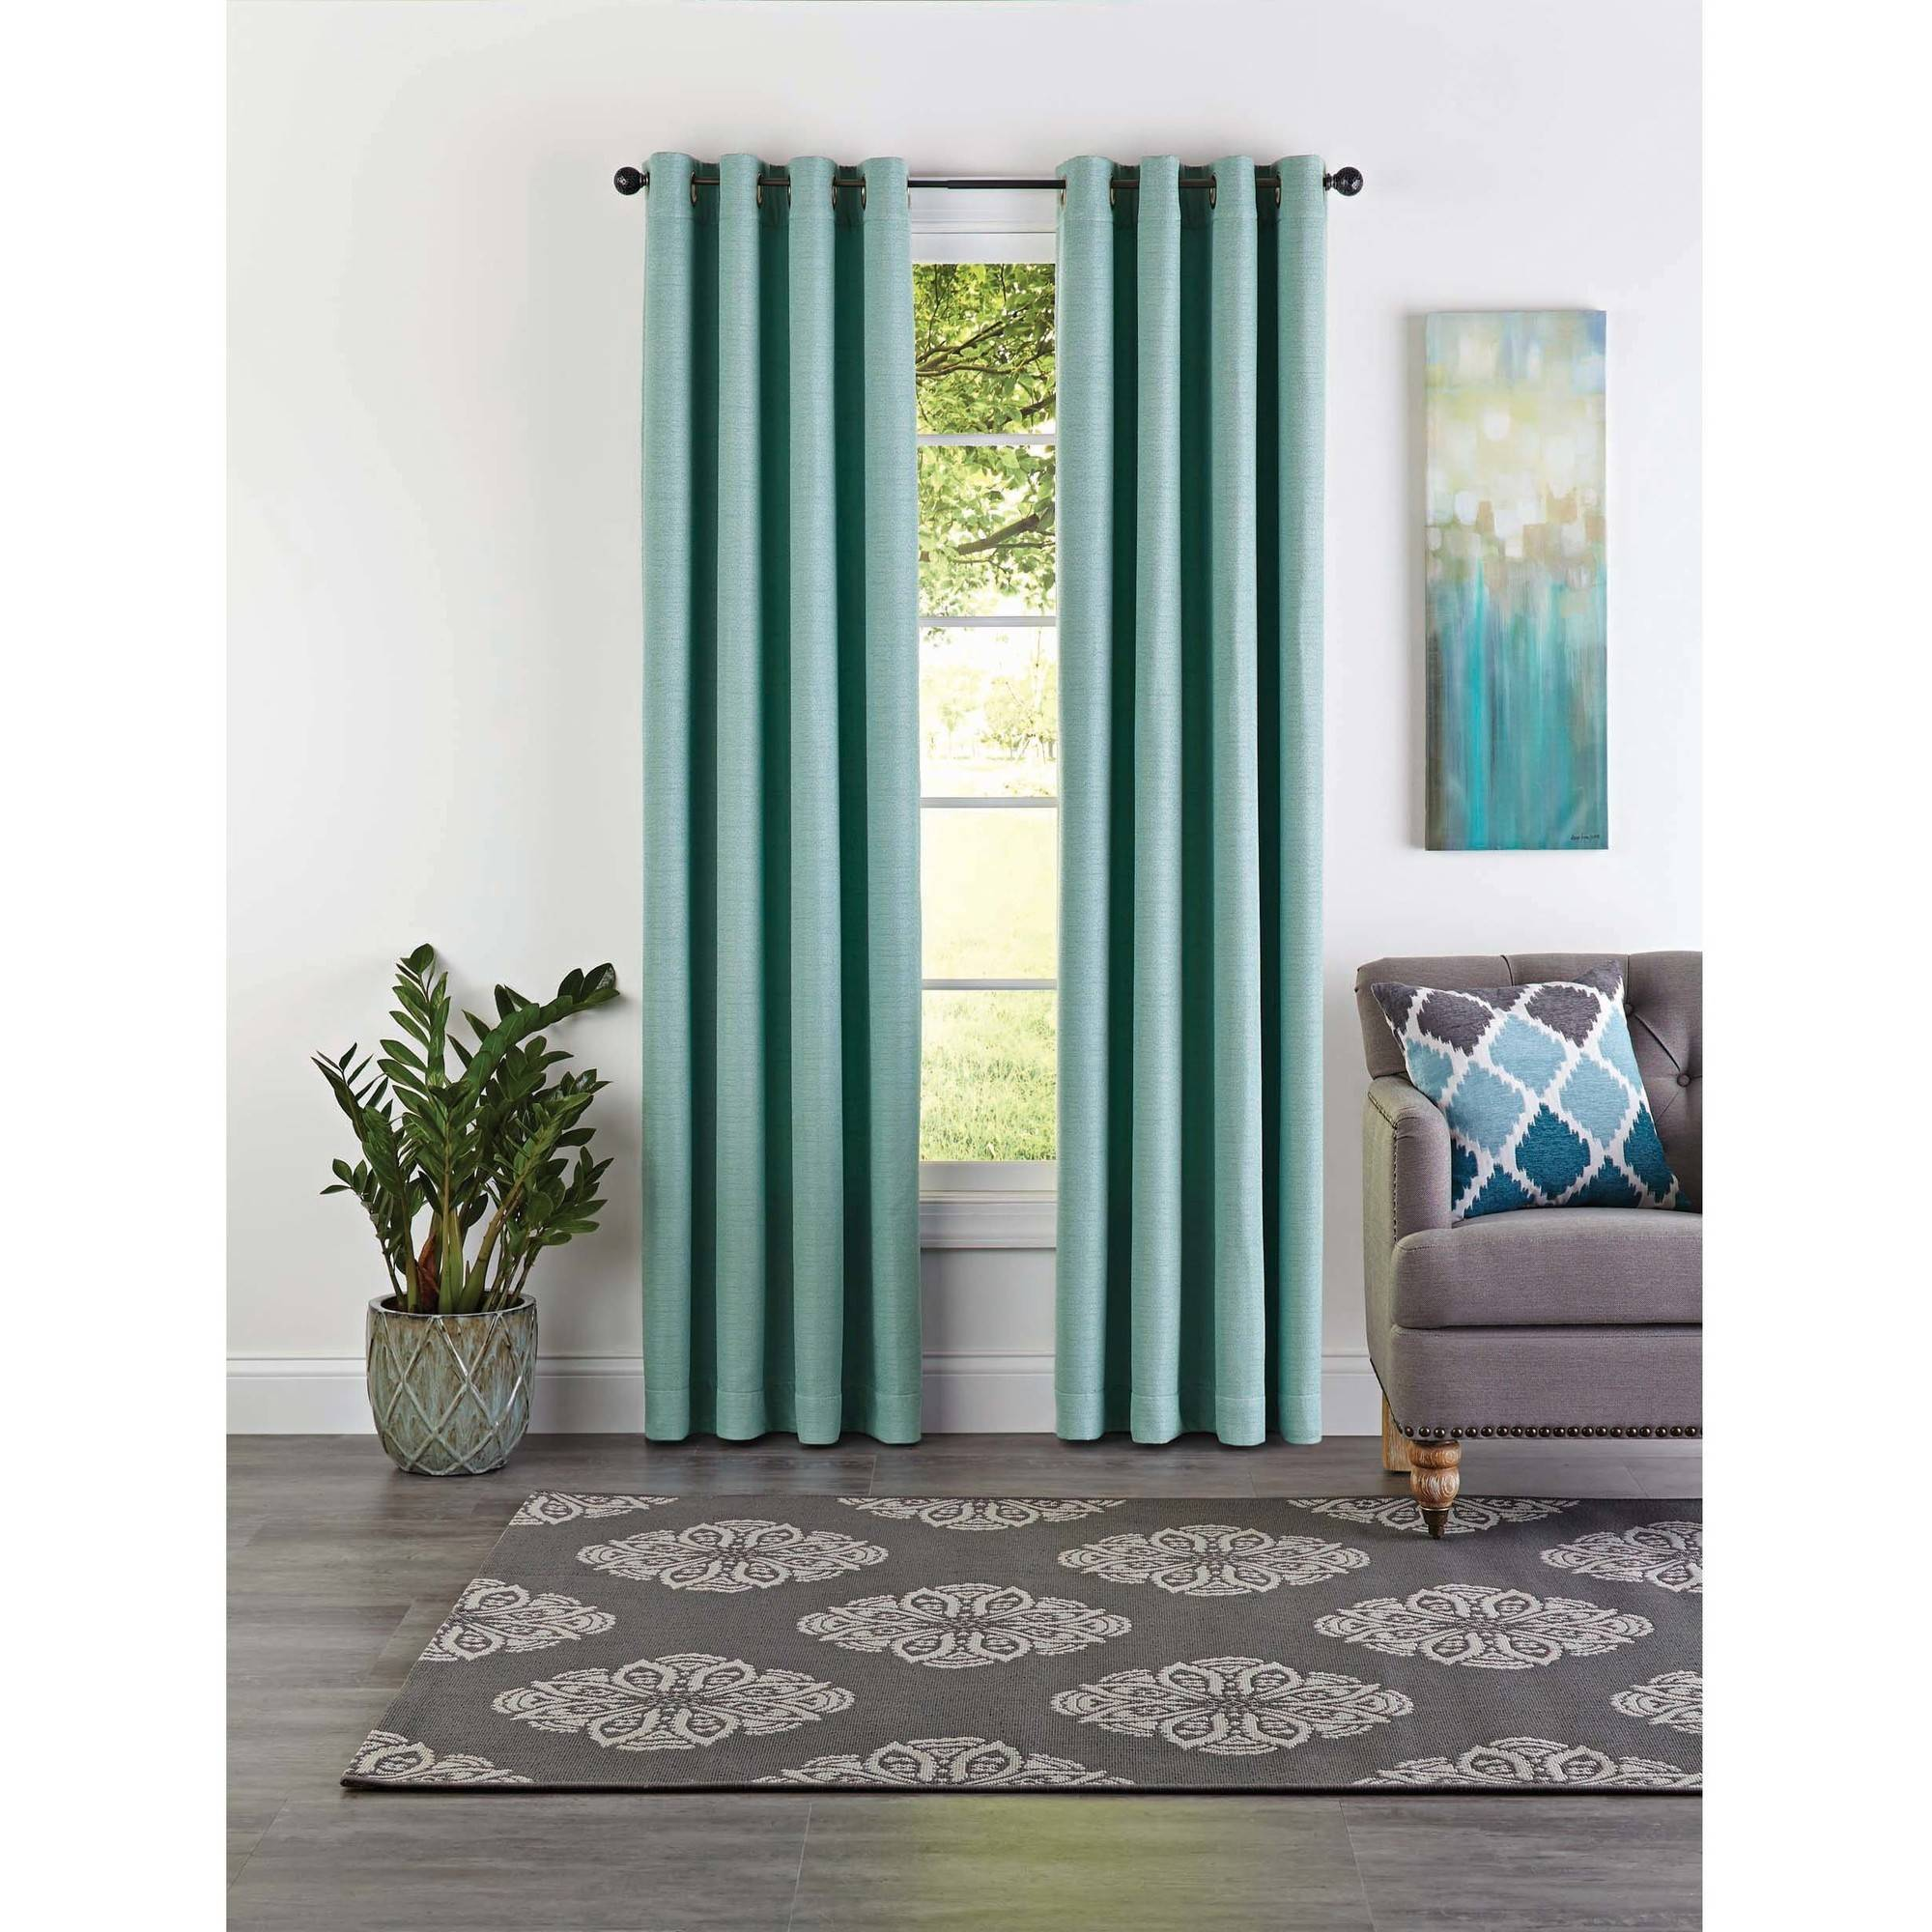 Better Homes and Gardens Basketweave Curtain Panel, Aqua